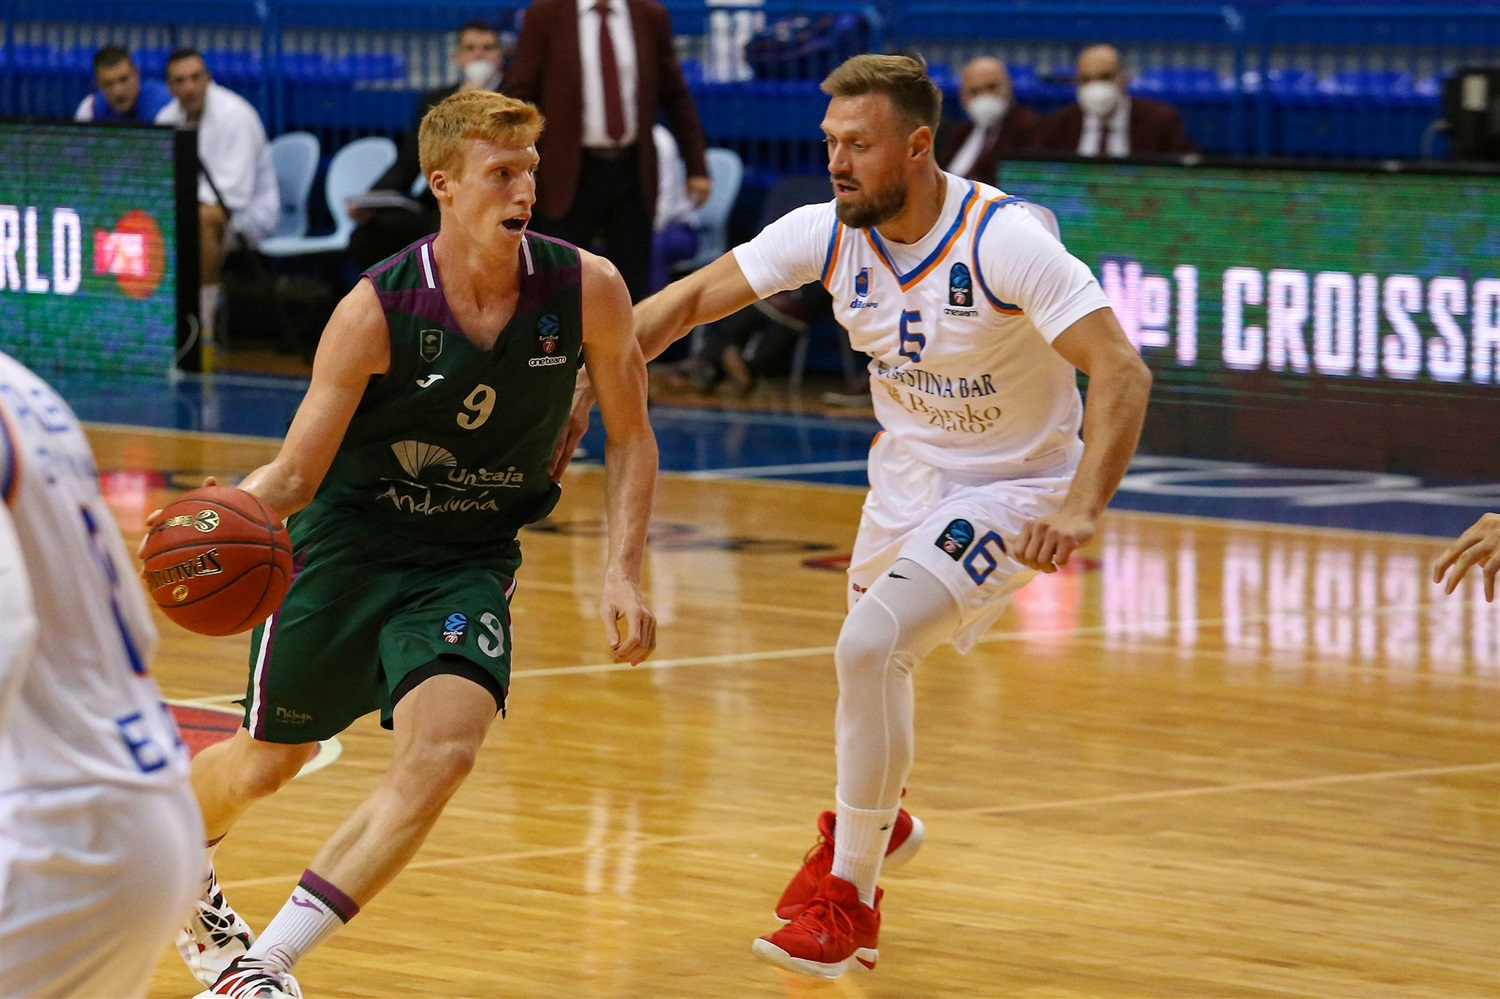 Alberto Diaz - Unicaja Malaga (photo Mornar) - EC20